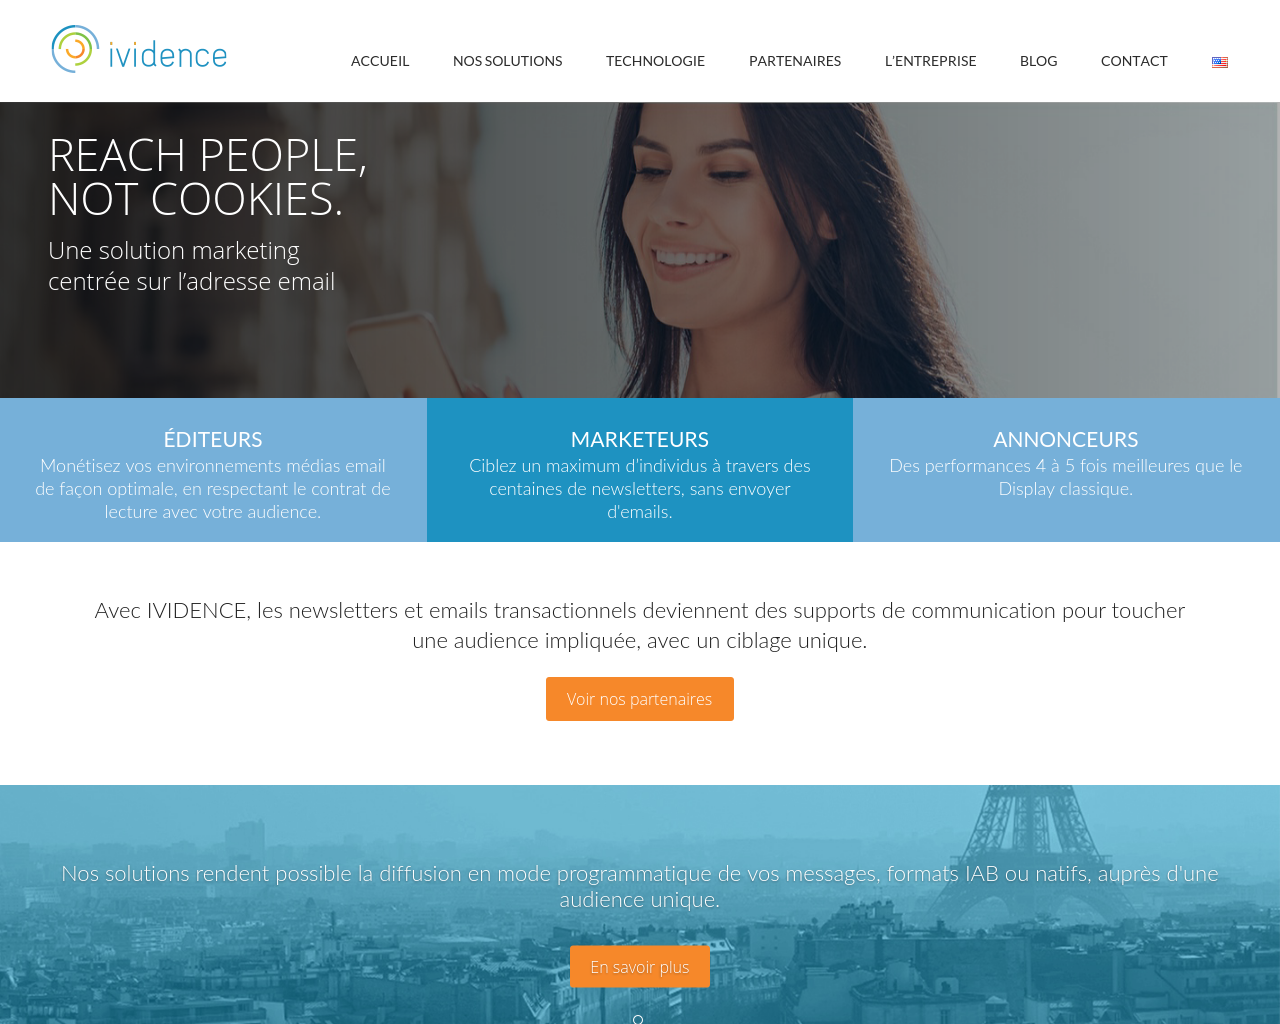 Ividence-Advertising-Reviews-Pricing